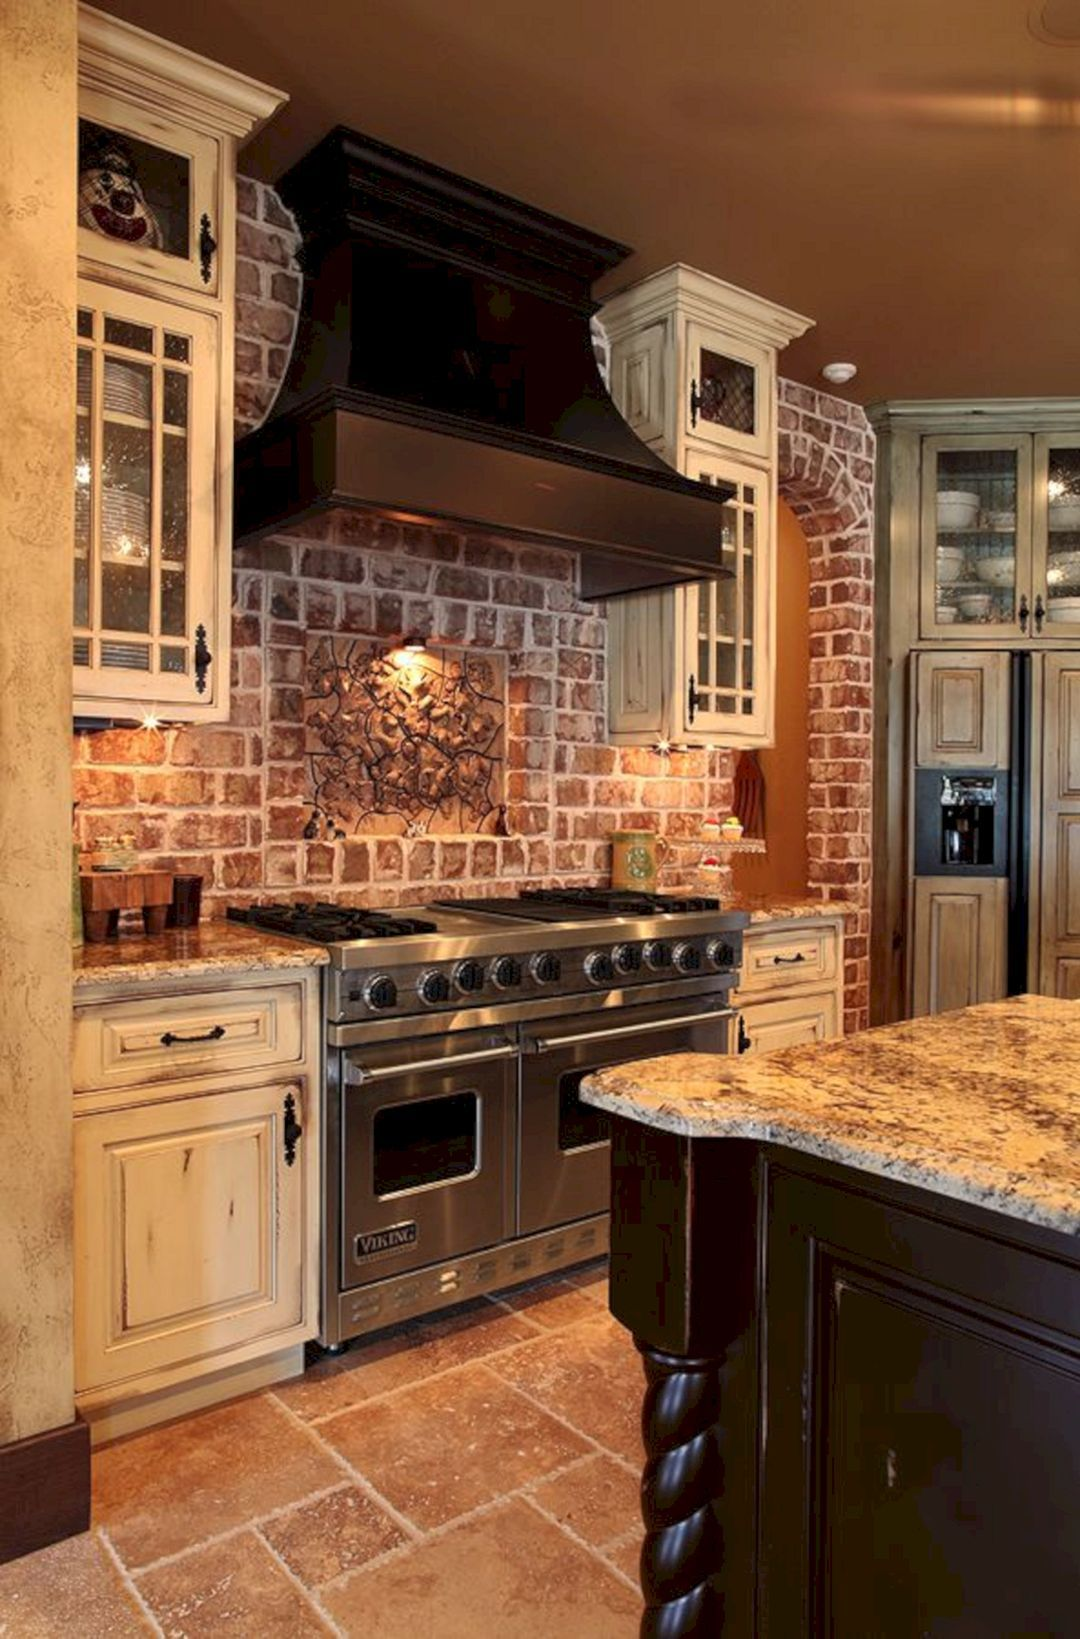 20+ Beautiful Red Brick Kitchen Design Ideas | Kitchen Room ... on brick entry ideas, brick bath ideas, brick shower ideas, brick studio ideas, brick kitchen island, brick stairs ideas, brick interior ideas, brick kitchen backsplash, brick home ideas, brick outdoor ideas, brick veneer kitchen, brick office ideas, brick screened in porch ideas, brick kitchen countertops, brick garage ideas, brick entrance ideas, brick privacy fence ideas, brick tile ideas, brick centerpiece ideas, brick and wood kitchen,